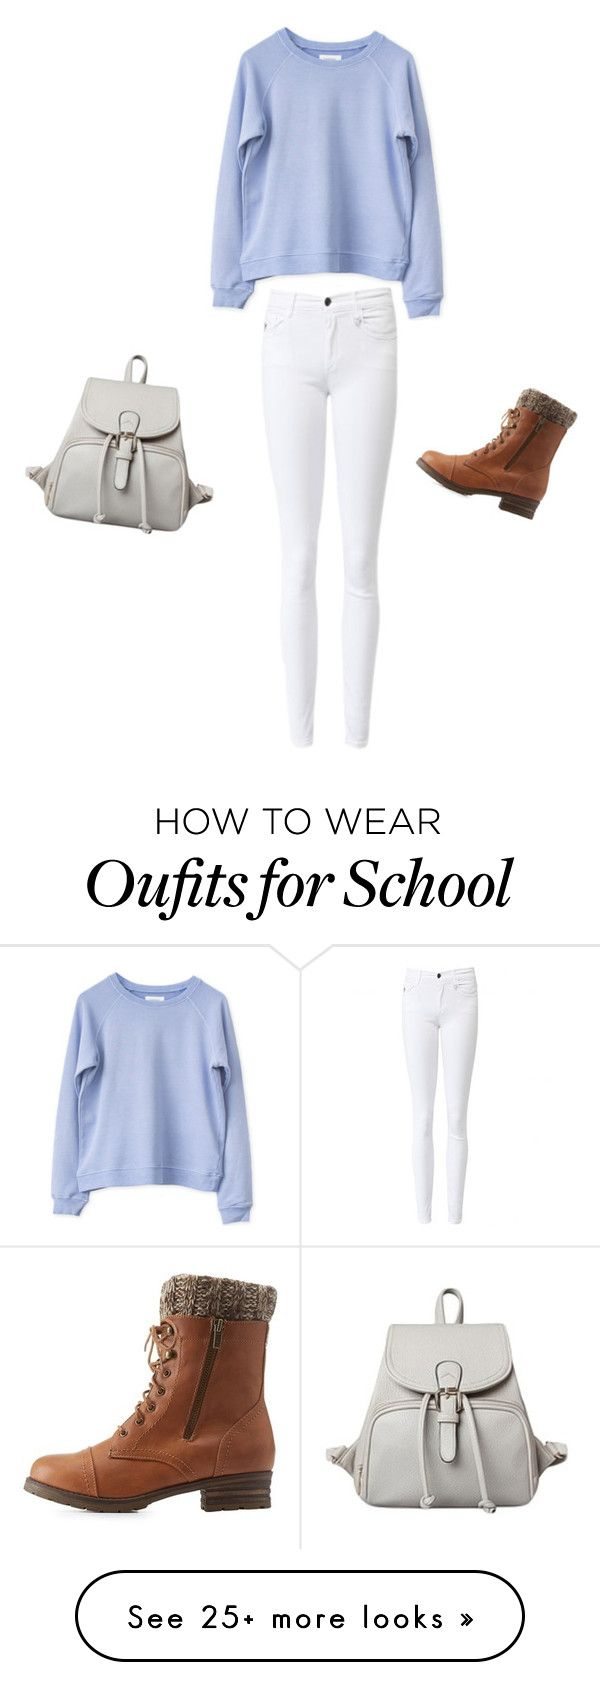 """School wear"" by bri-style on Polyvore featuring Charlotte Russe"